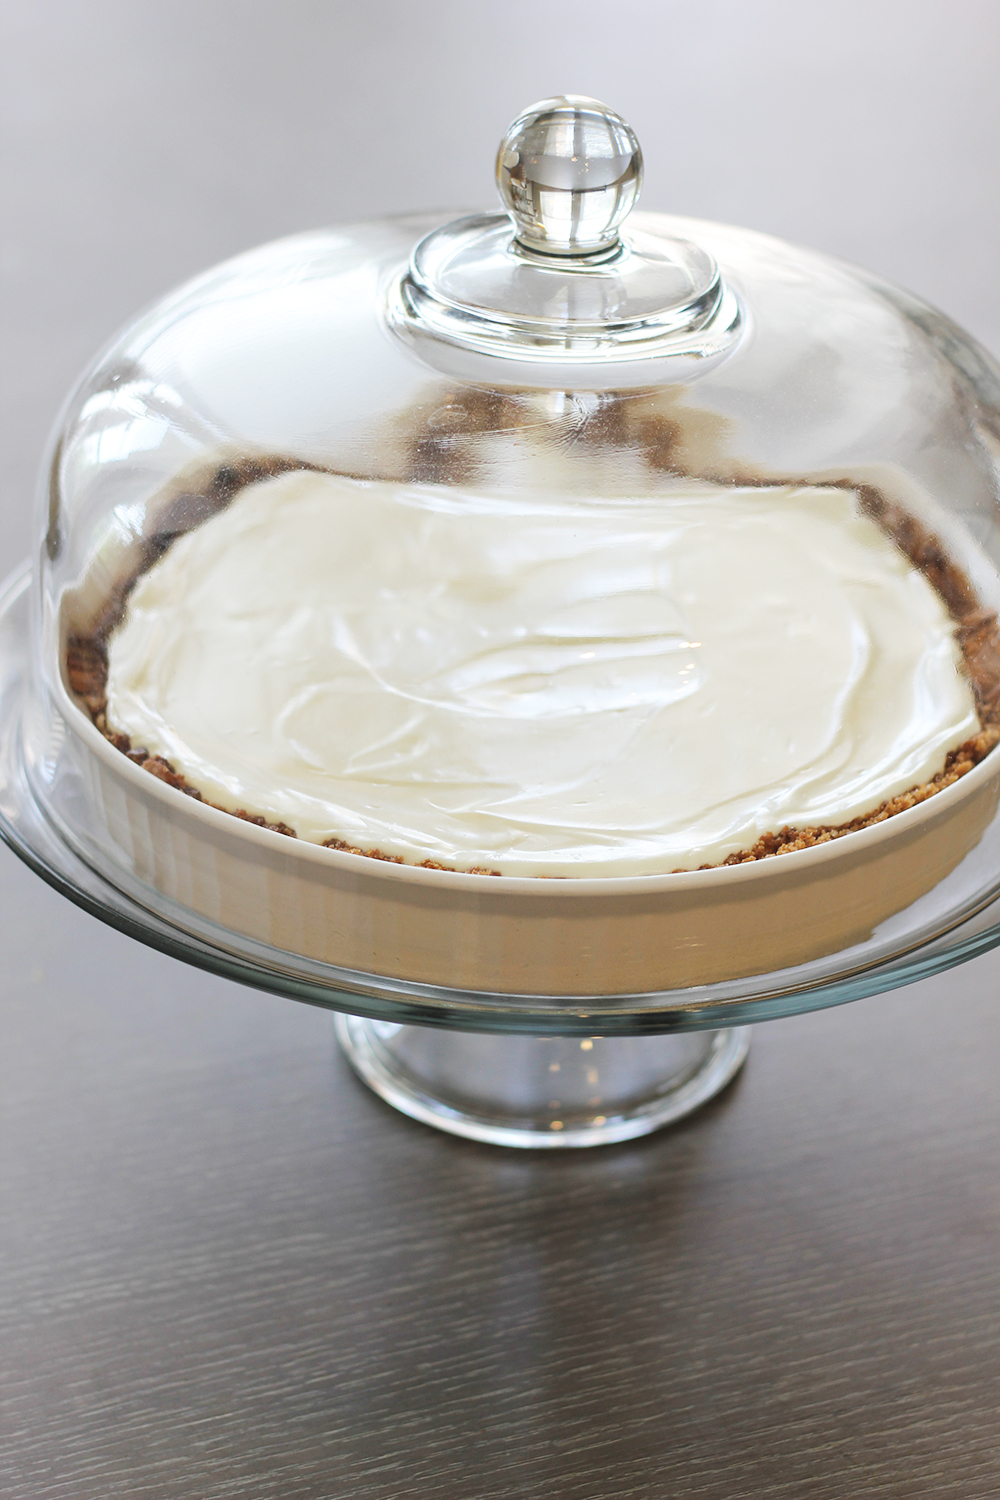 candied-key-lime-pie-1